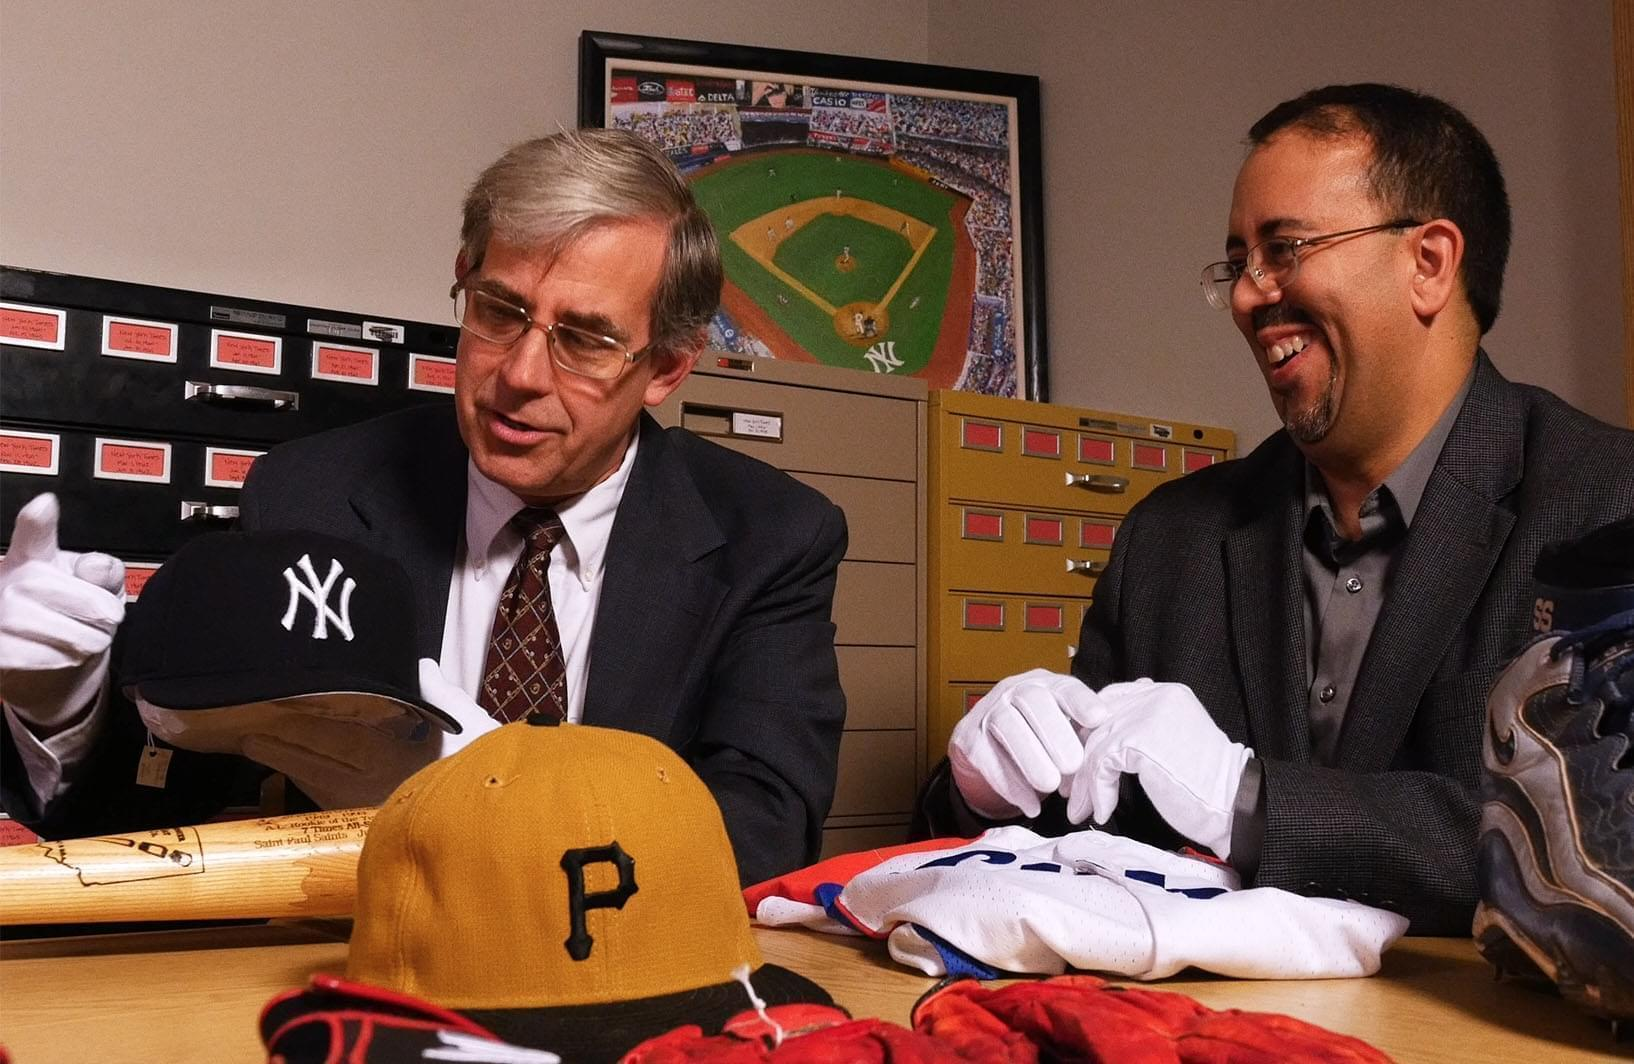 U of I History Professor Adrian Burgos with National Baseball Hall of Fame Curator John Odell